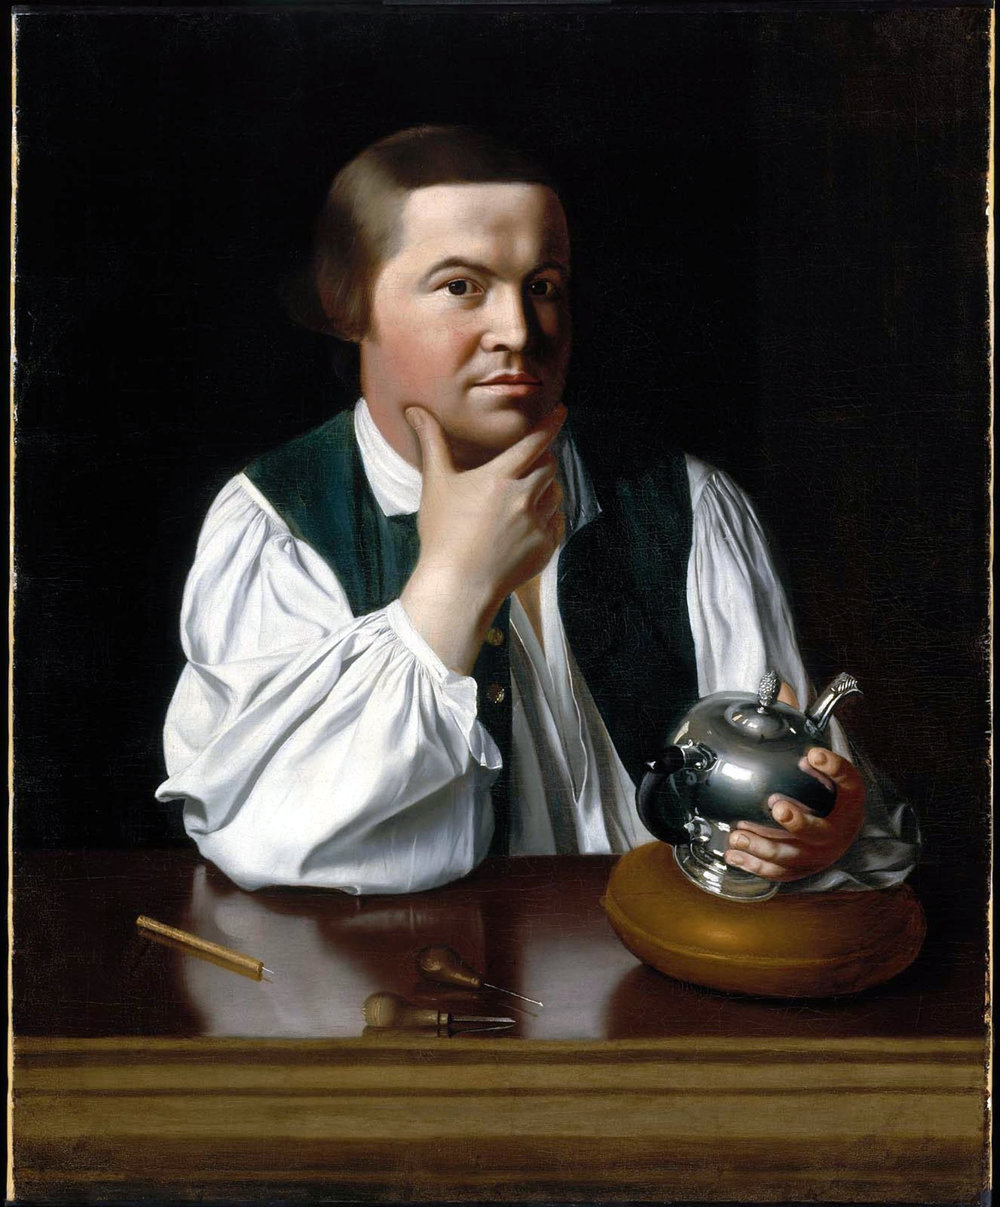 """Portrait of Paul Revere"" by John Singleton Copley licensed under CC BY 2.0"